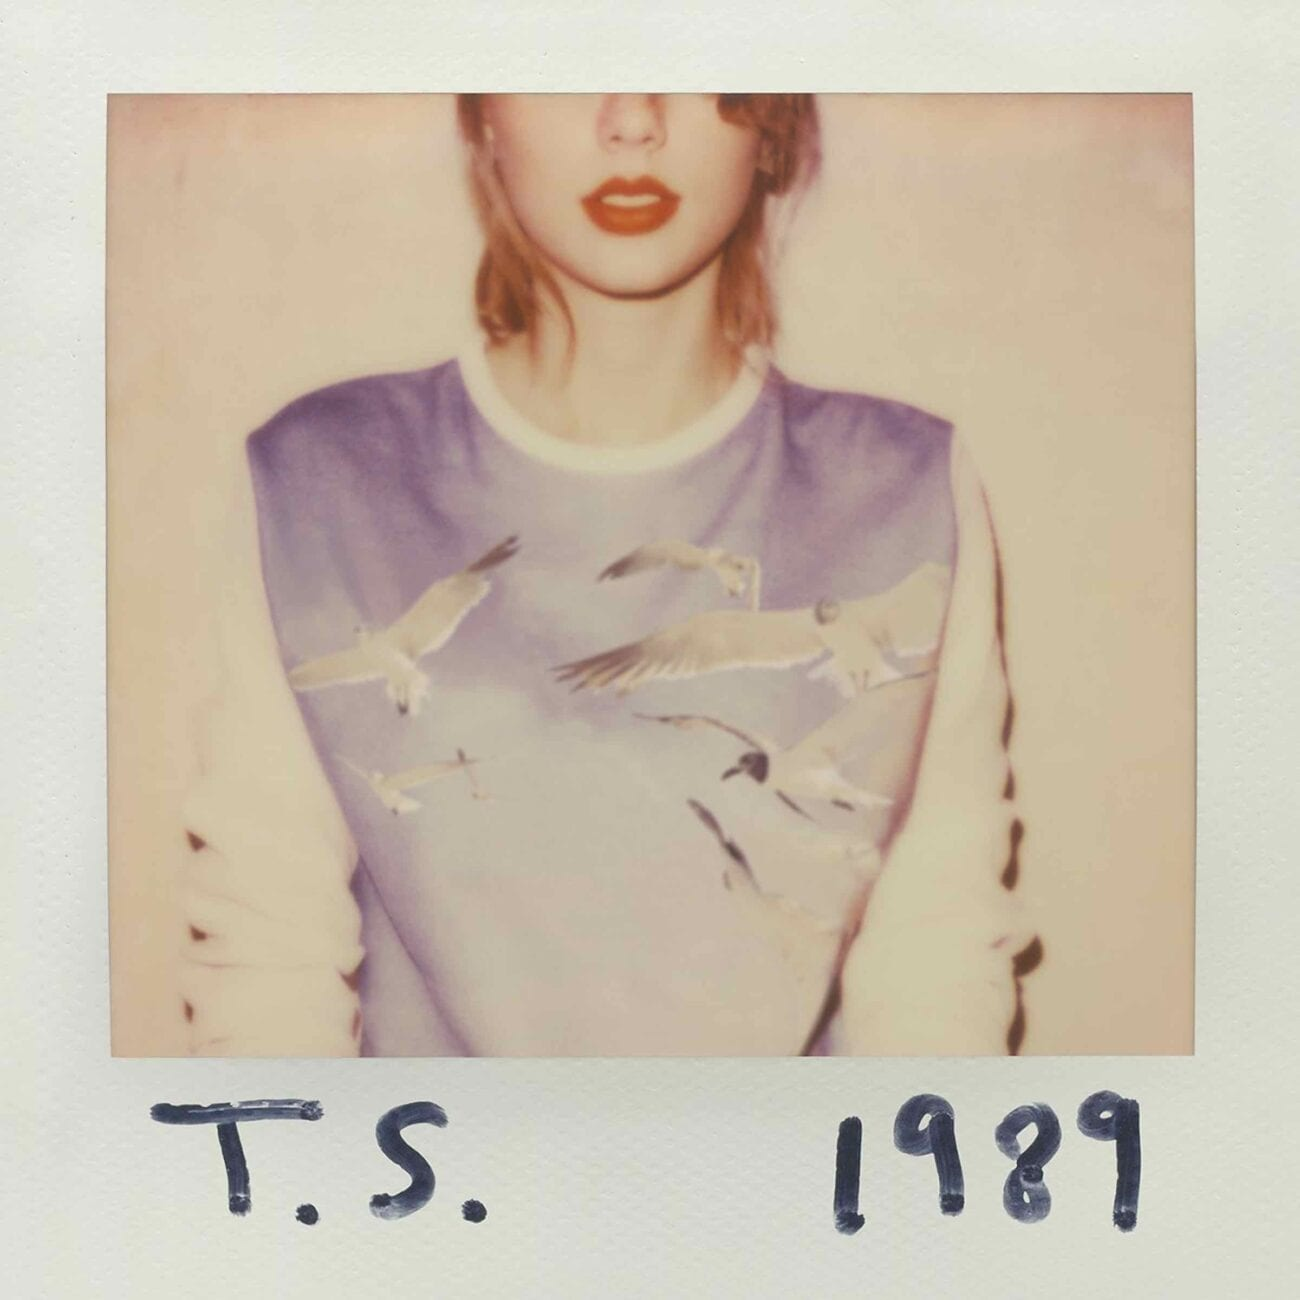 The Swifties claim Taylor Swift will re-release '1989' any day now. Grab your guitars and dive into the hype around the re-release of the songs from '1989'.